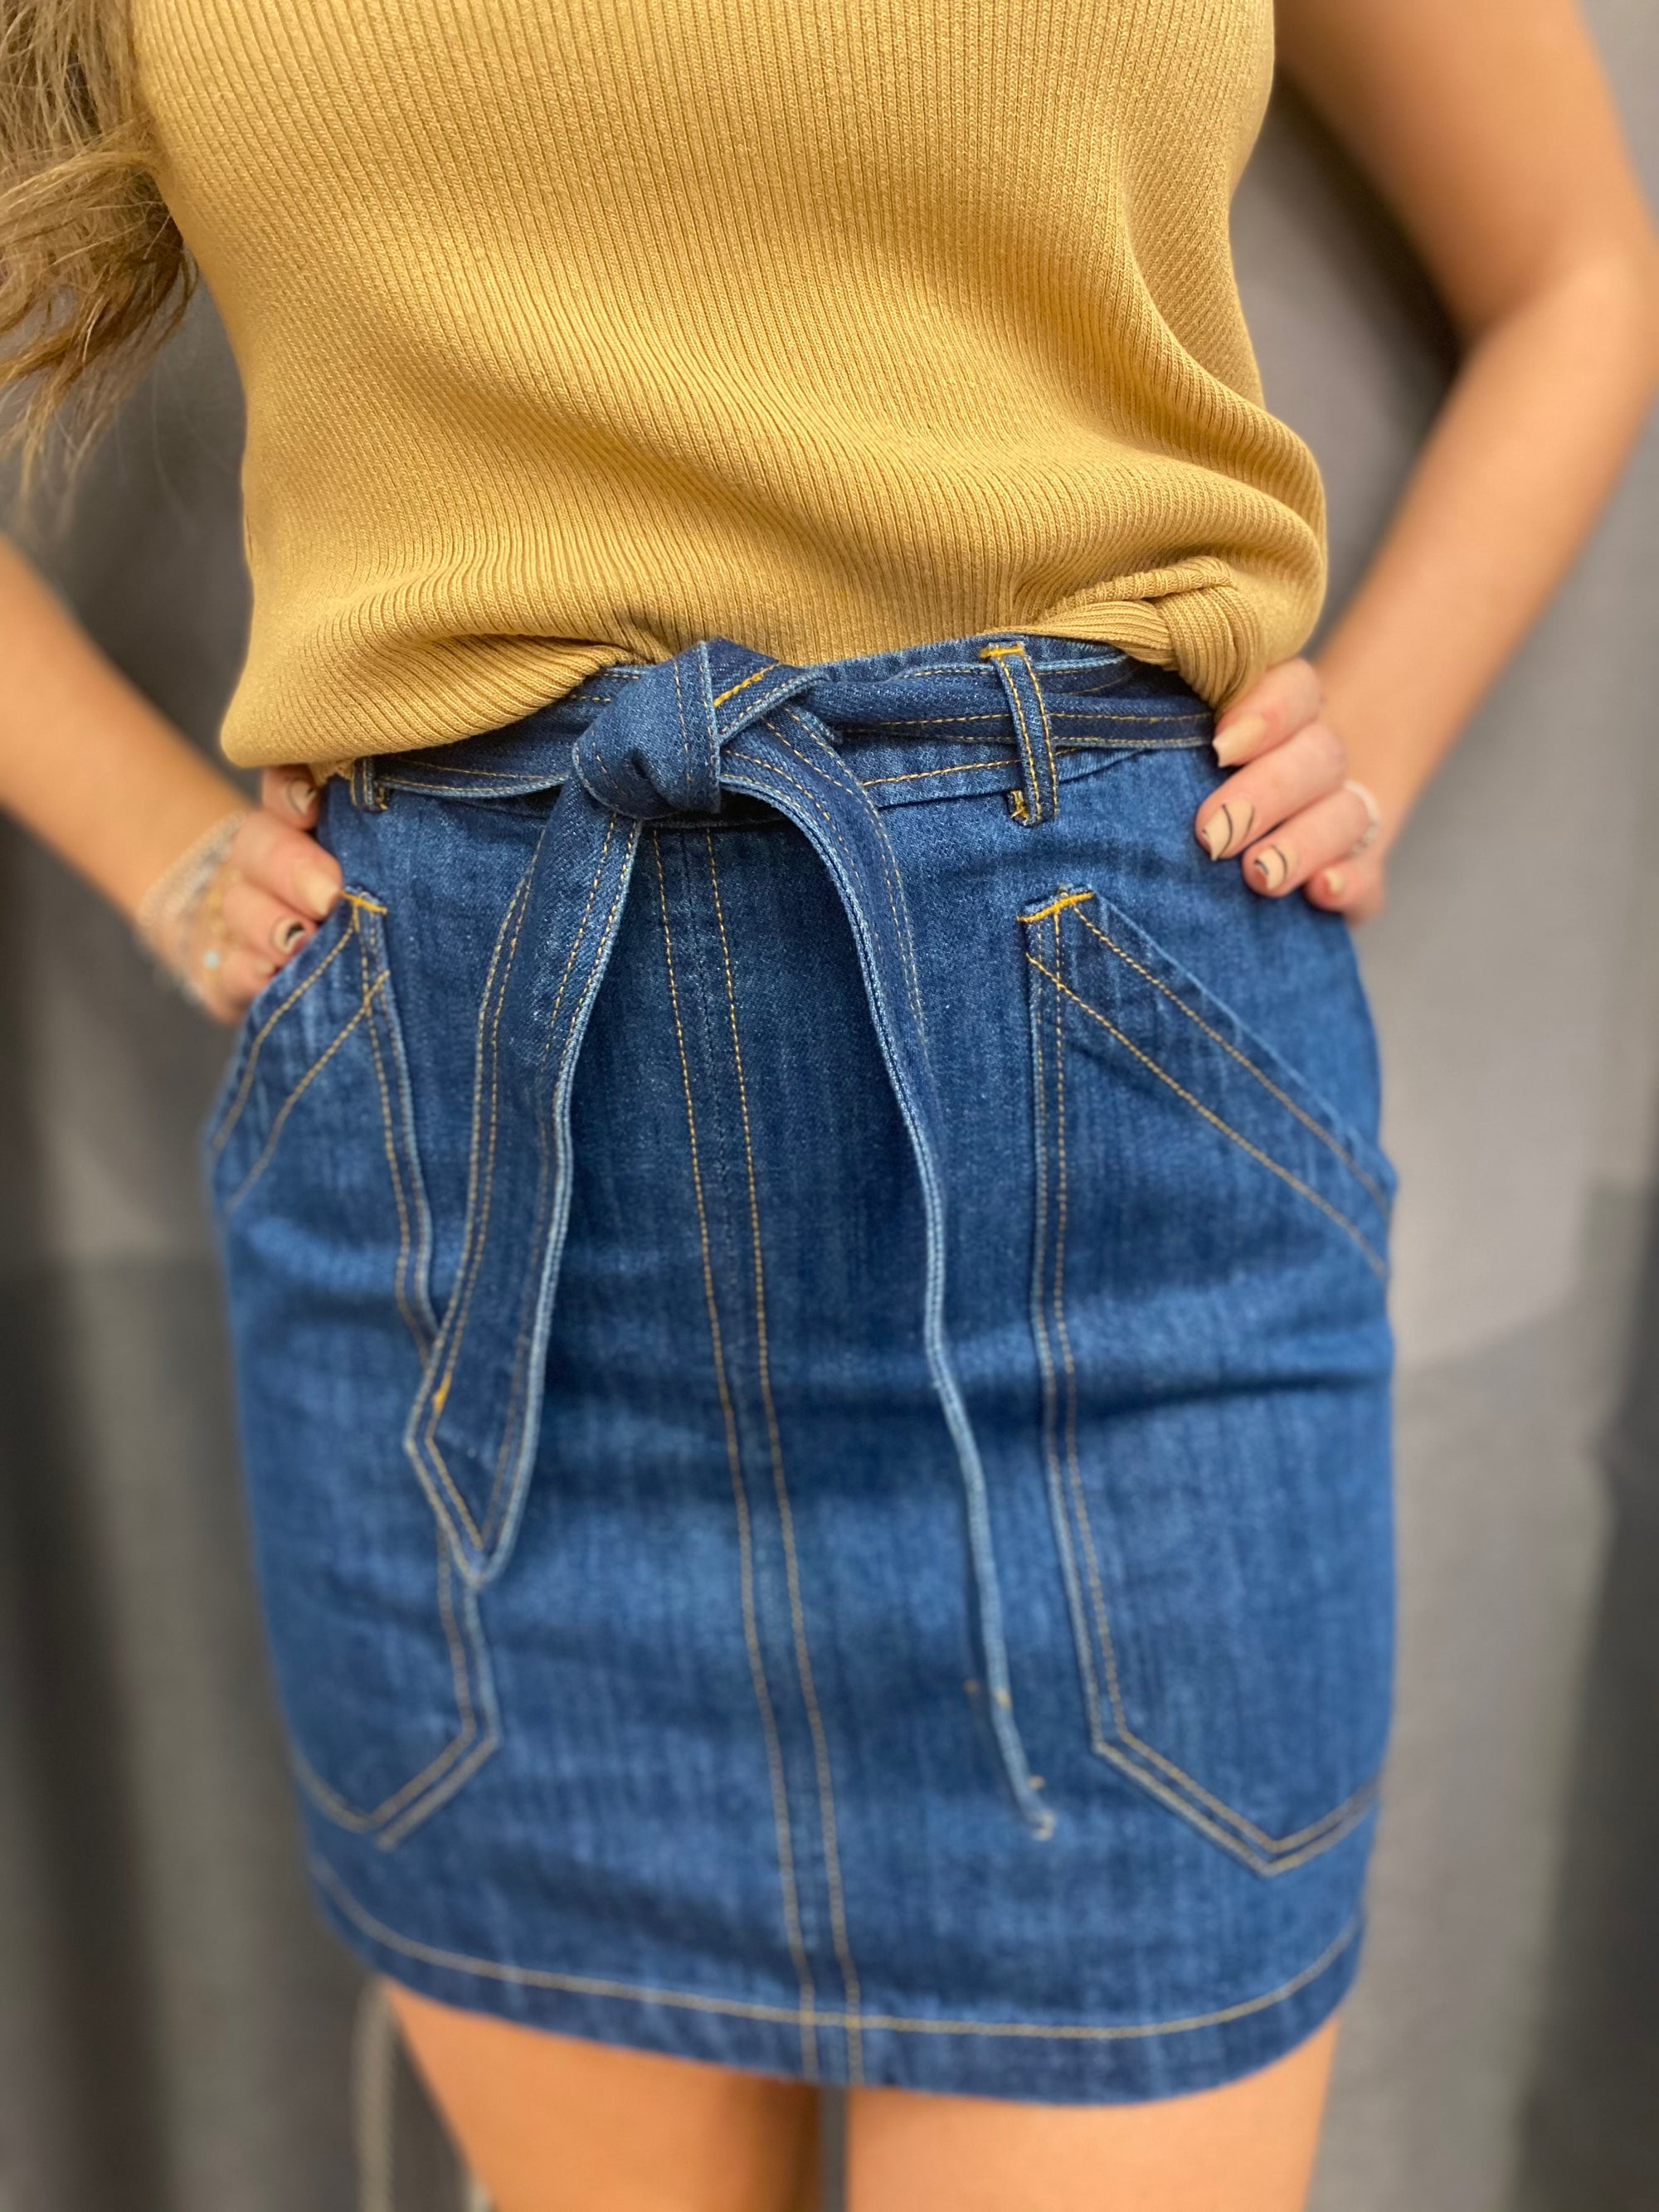 The Retro Denim Skirt